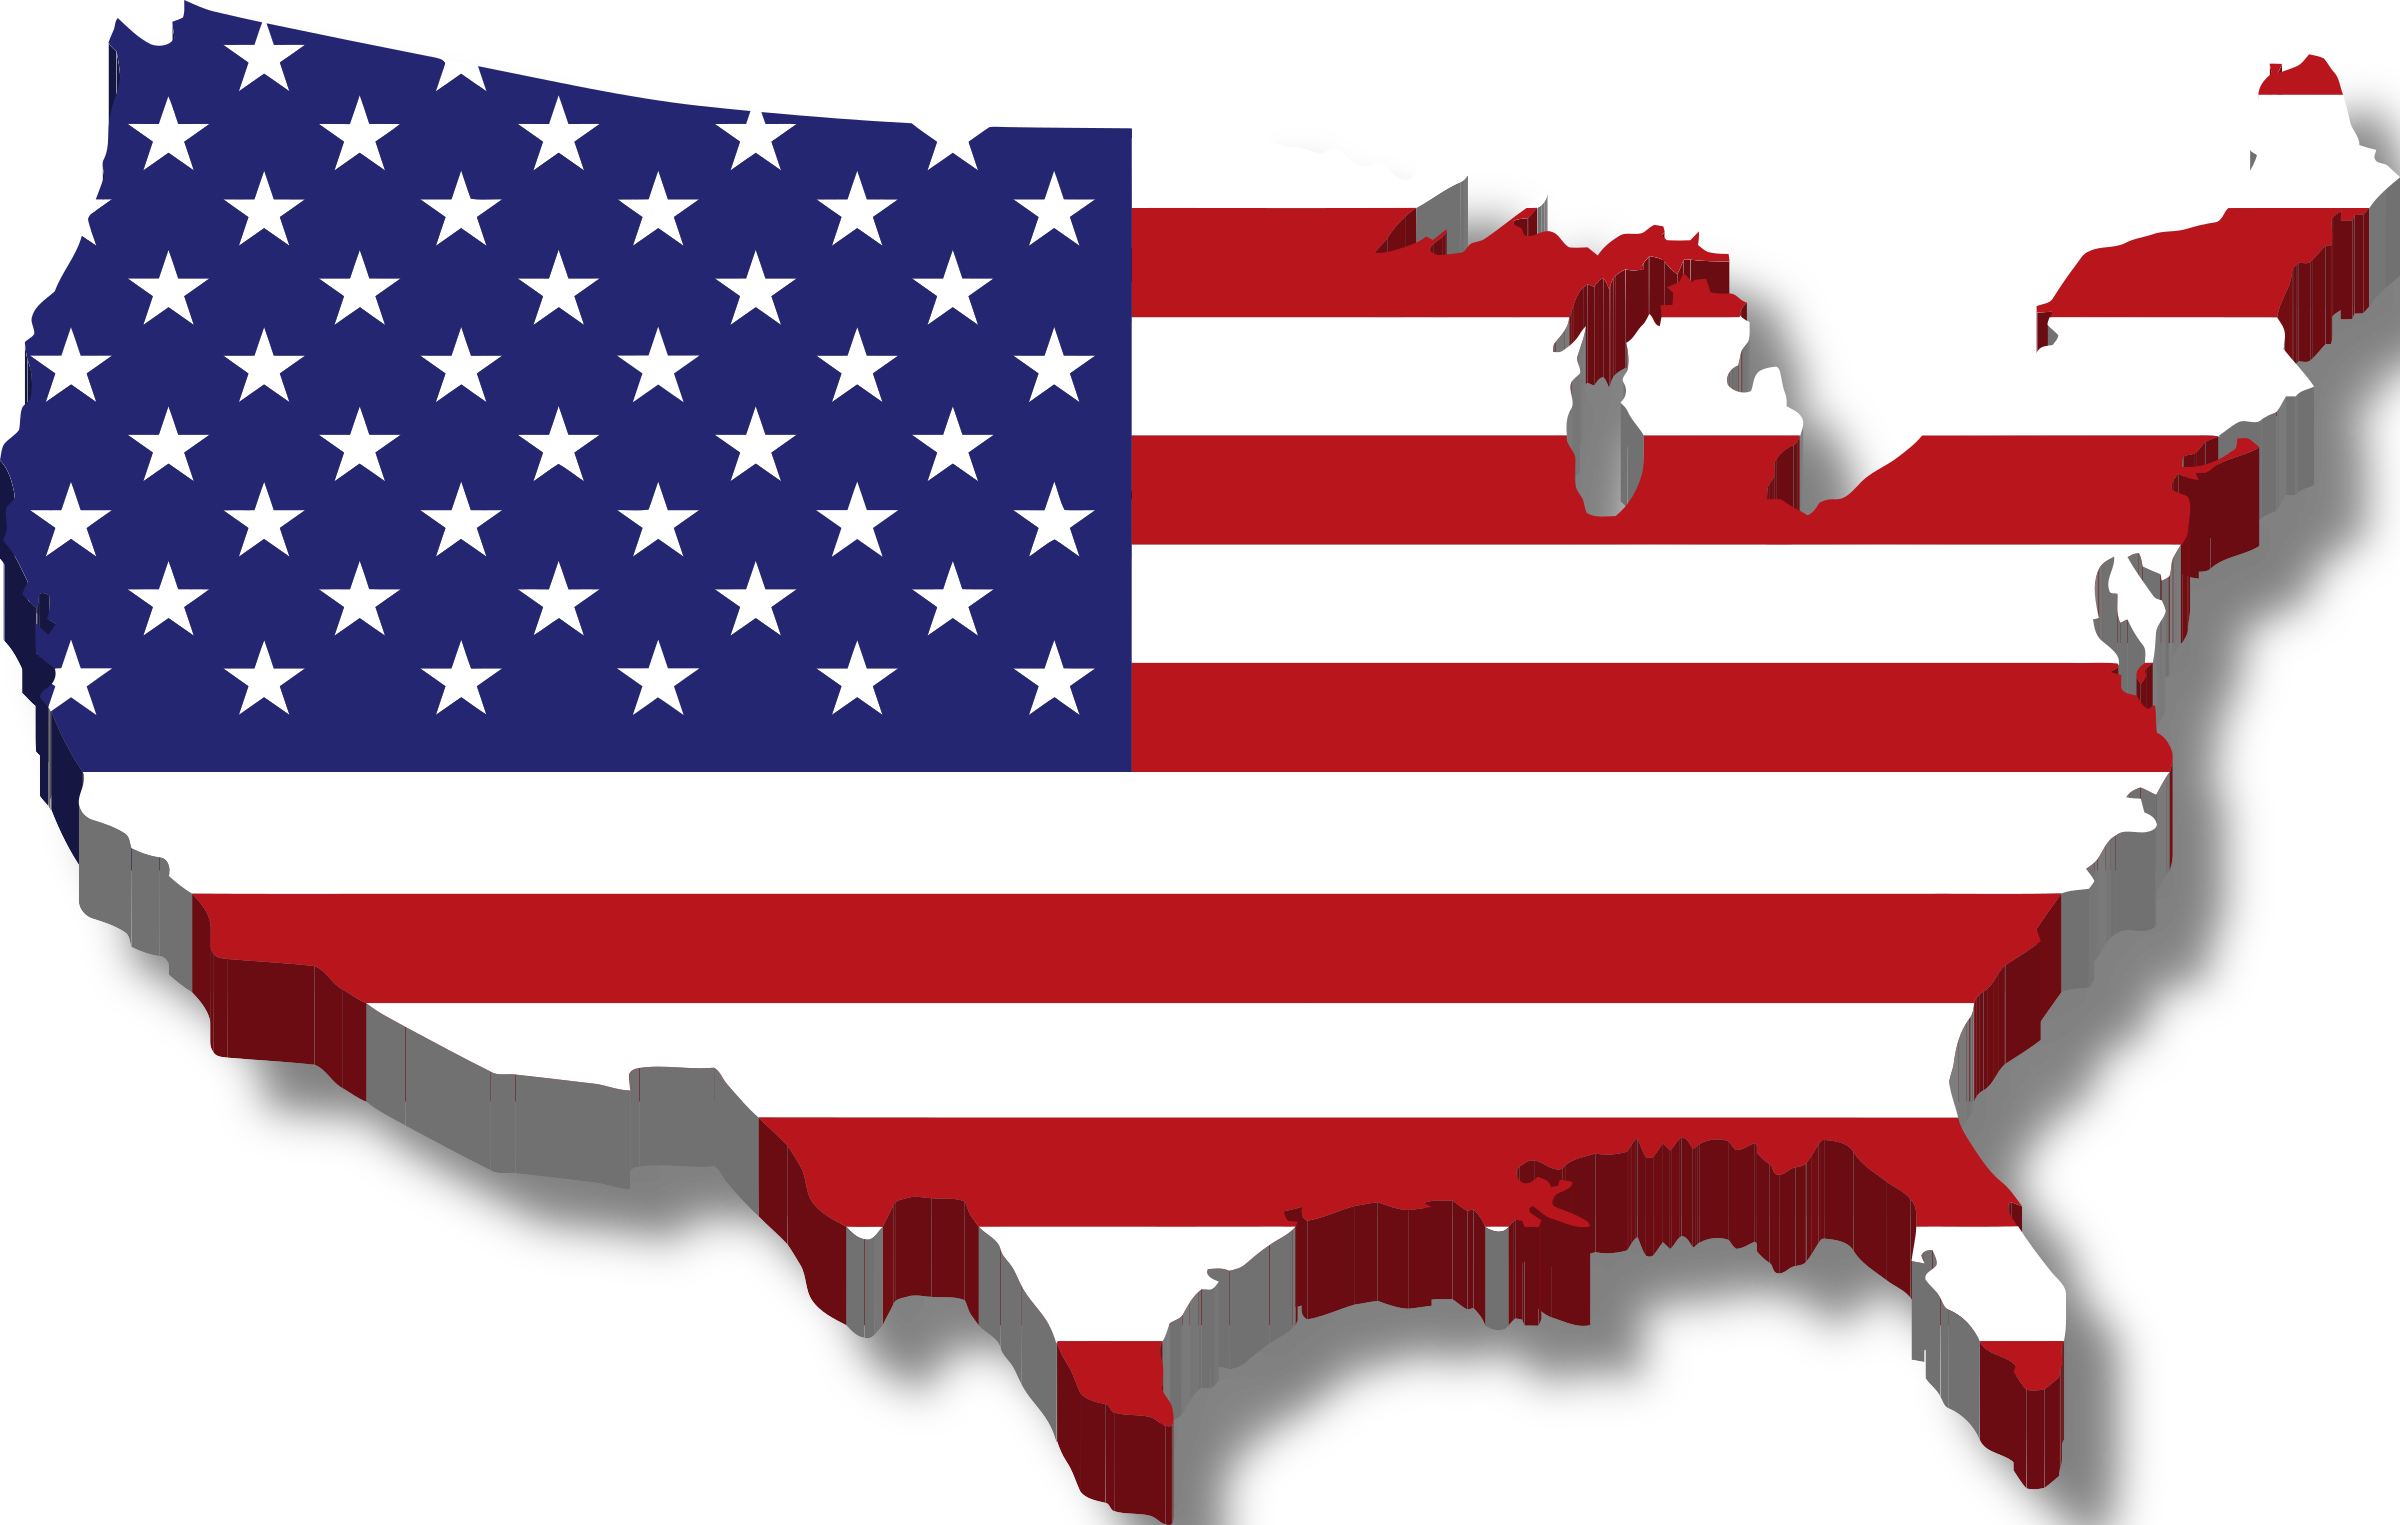 America Map Flag w/ Drop Shadow by @GDJ, Contiguous United